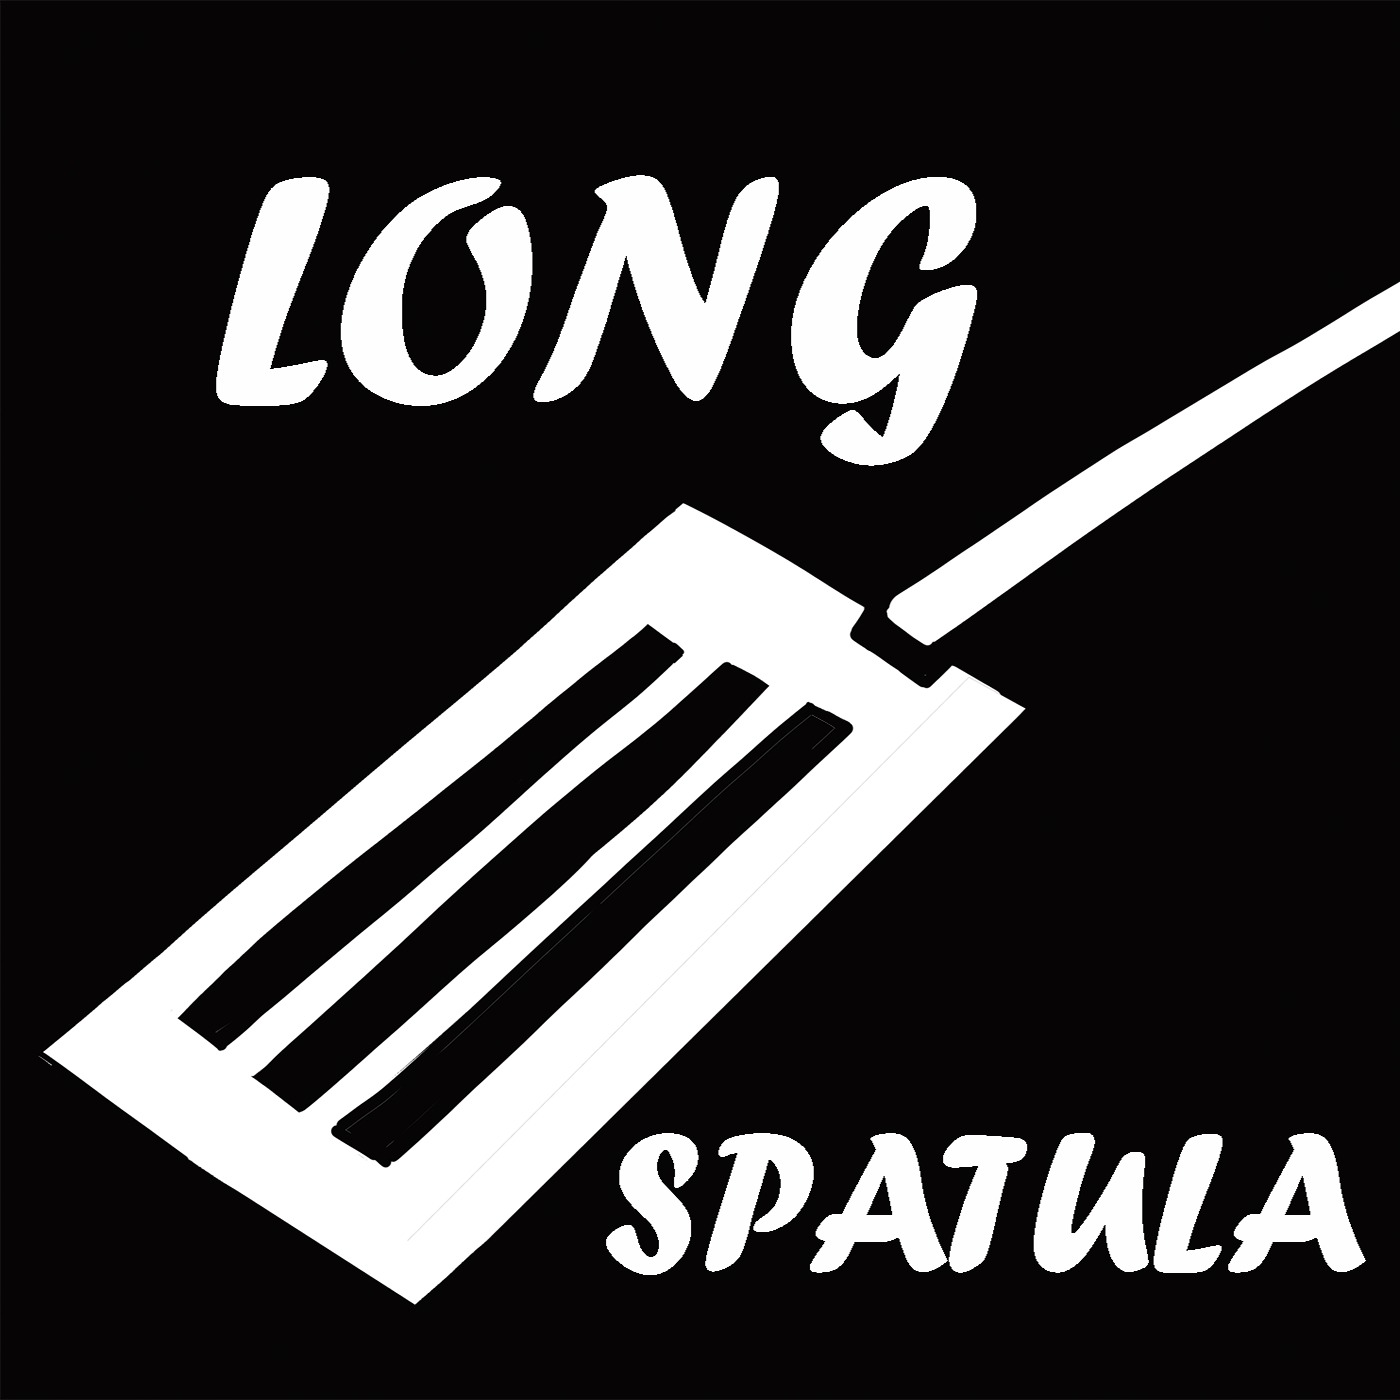 The Long Spatula Podcast:Osanne and Ryan